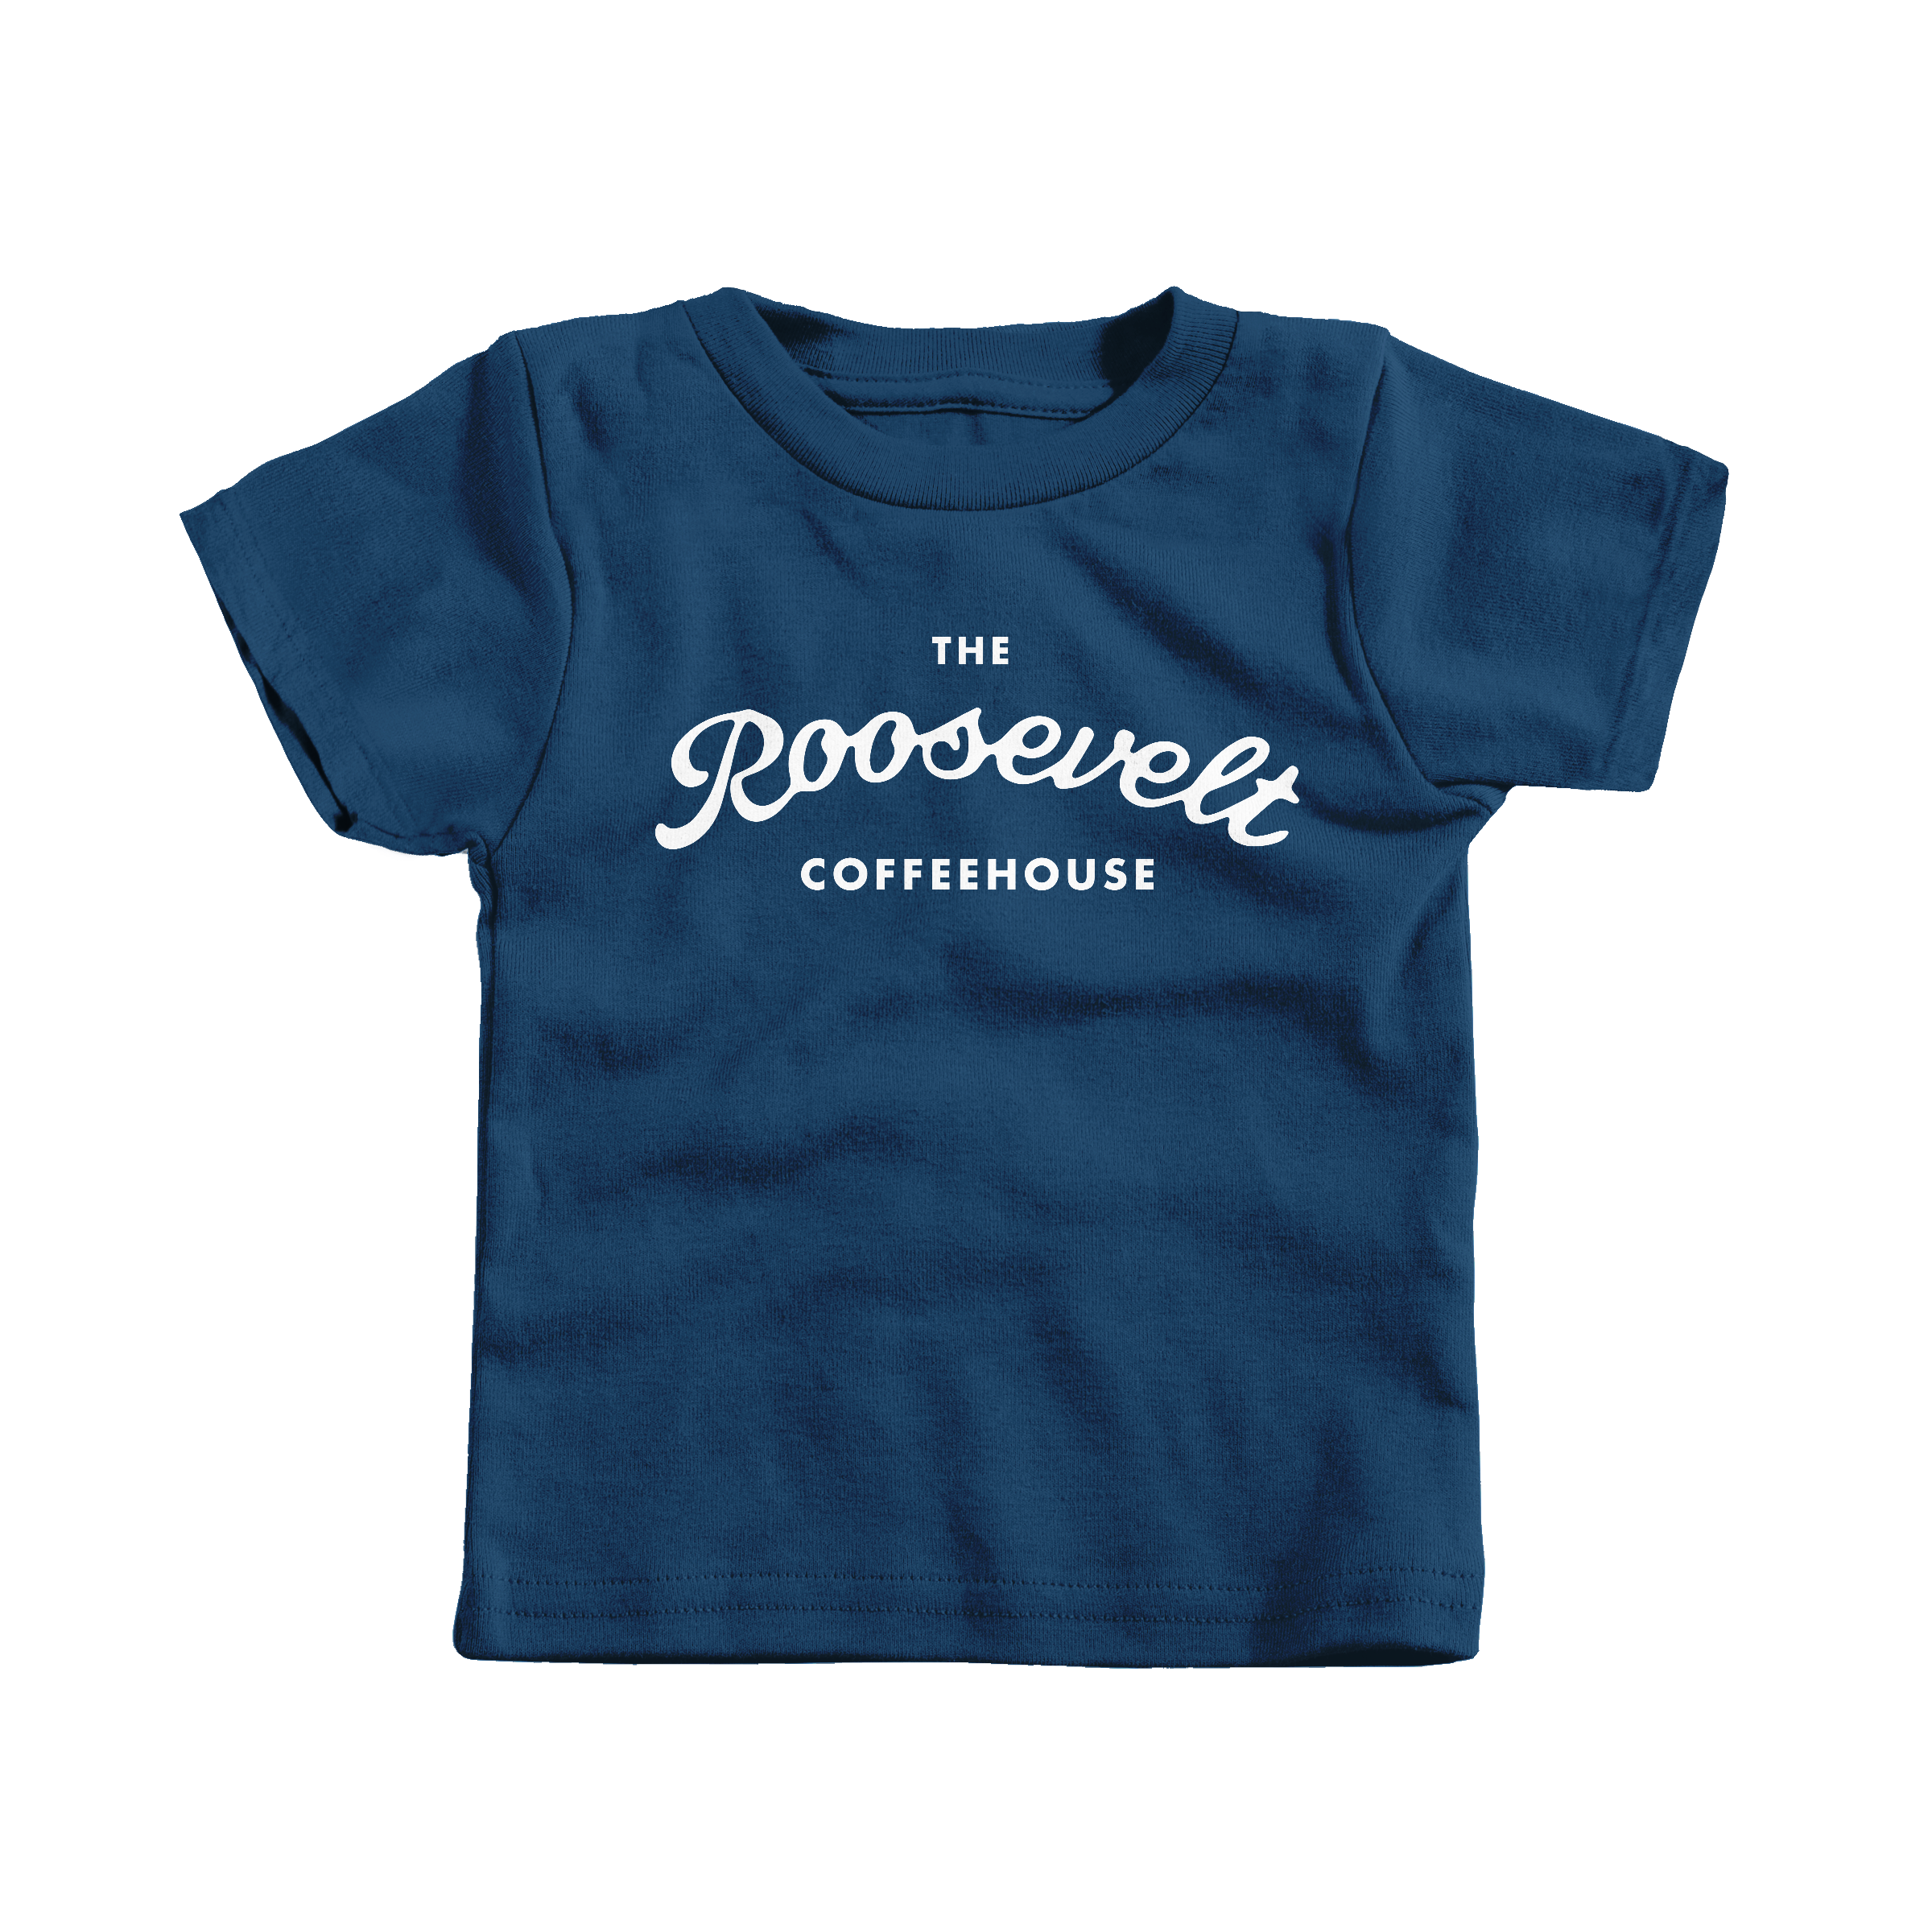 The Roosevelt Coffeehouse Navy (T-Shirt)